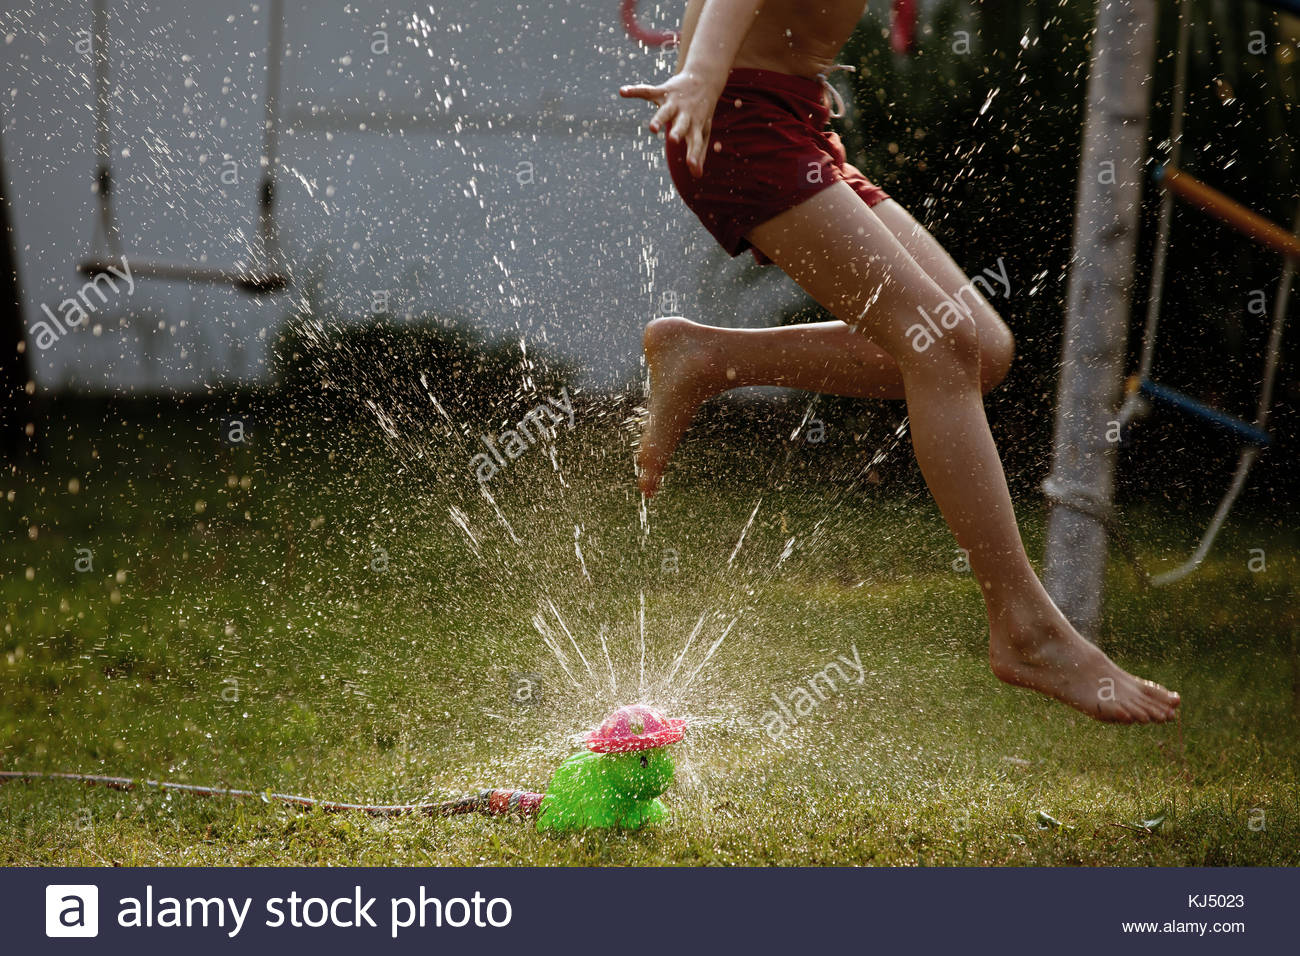 Lawn sprinkler happiness - Stock Image